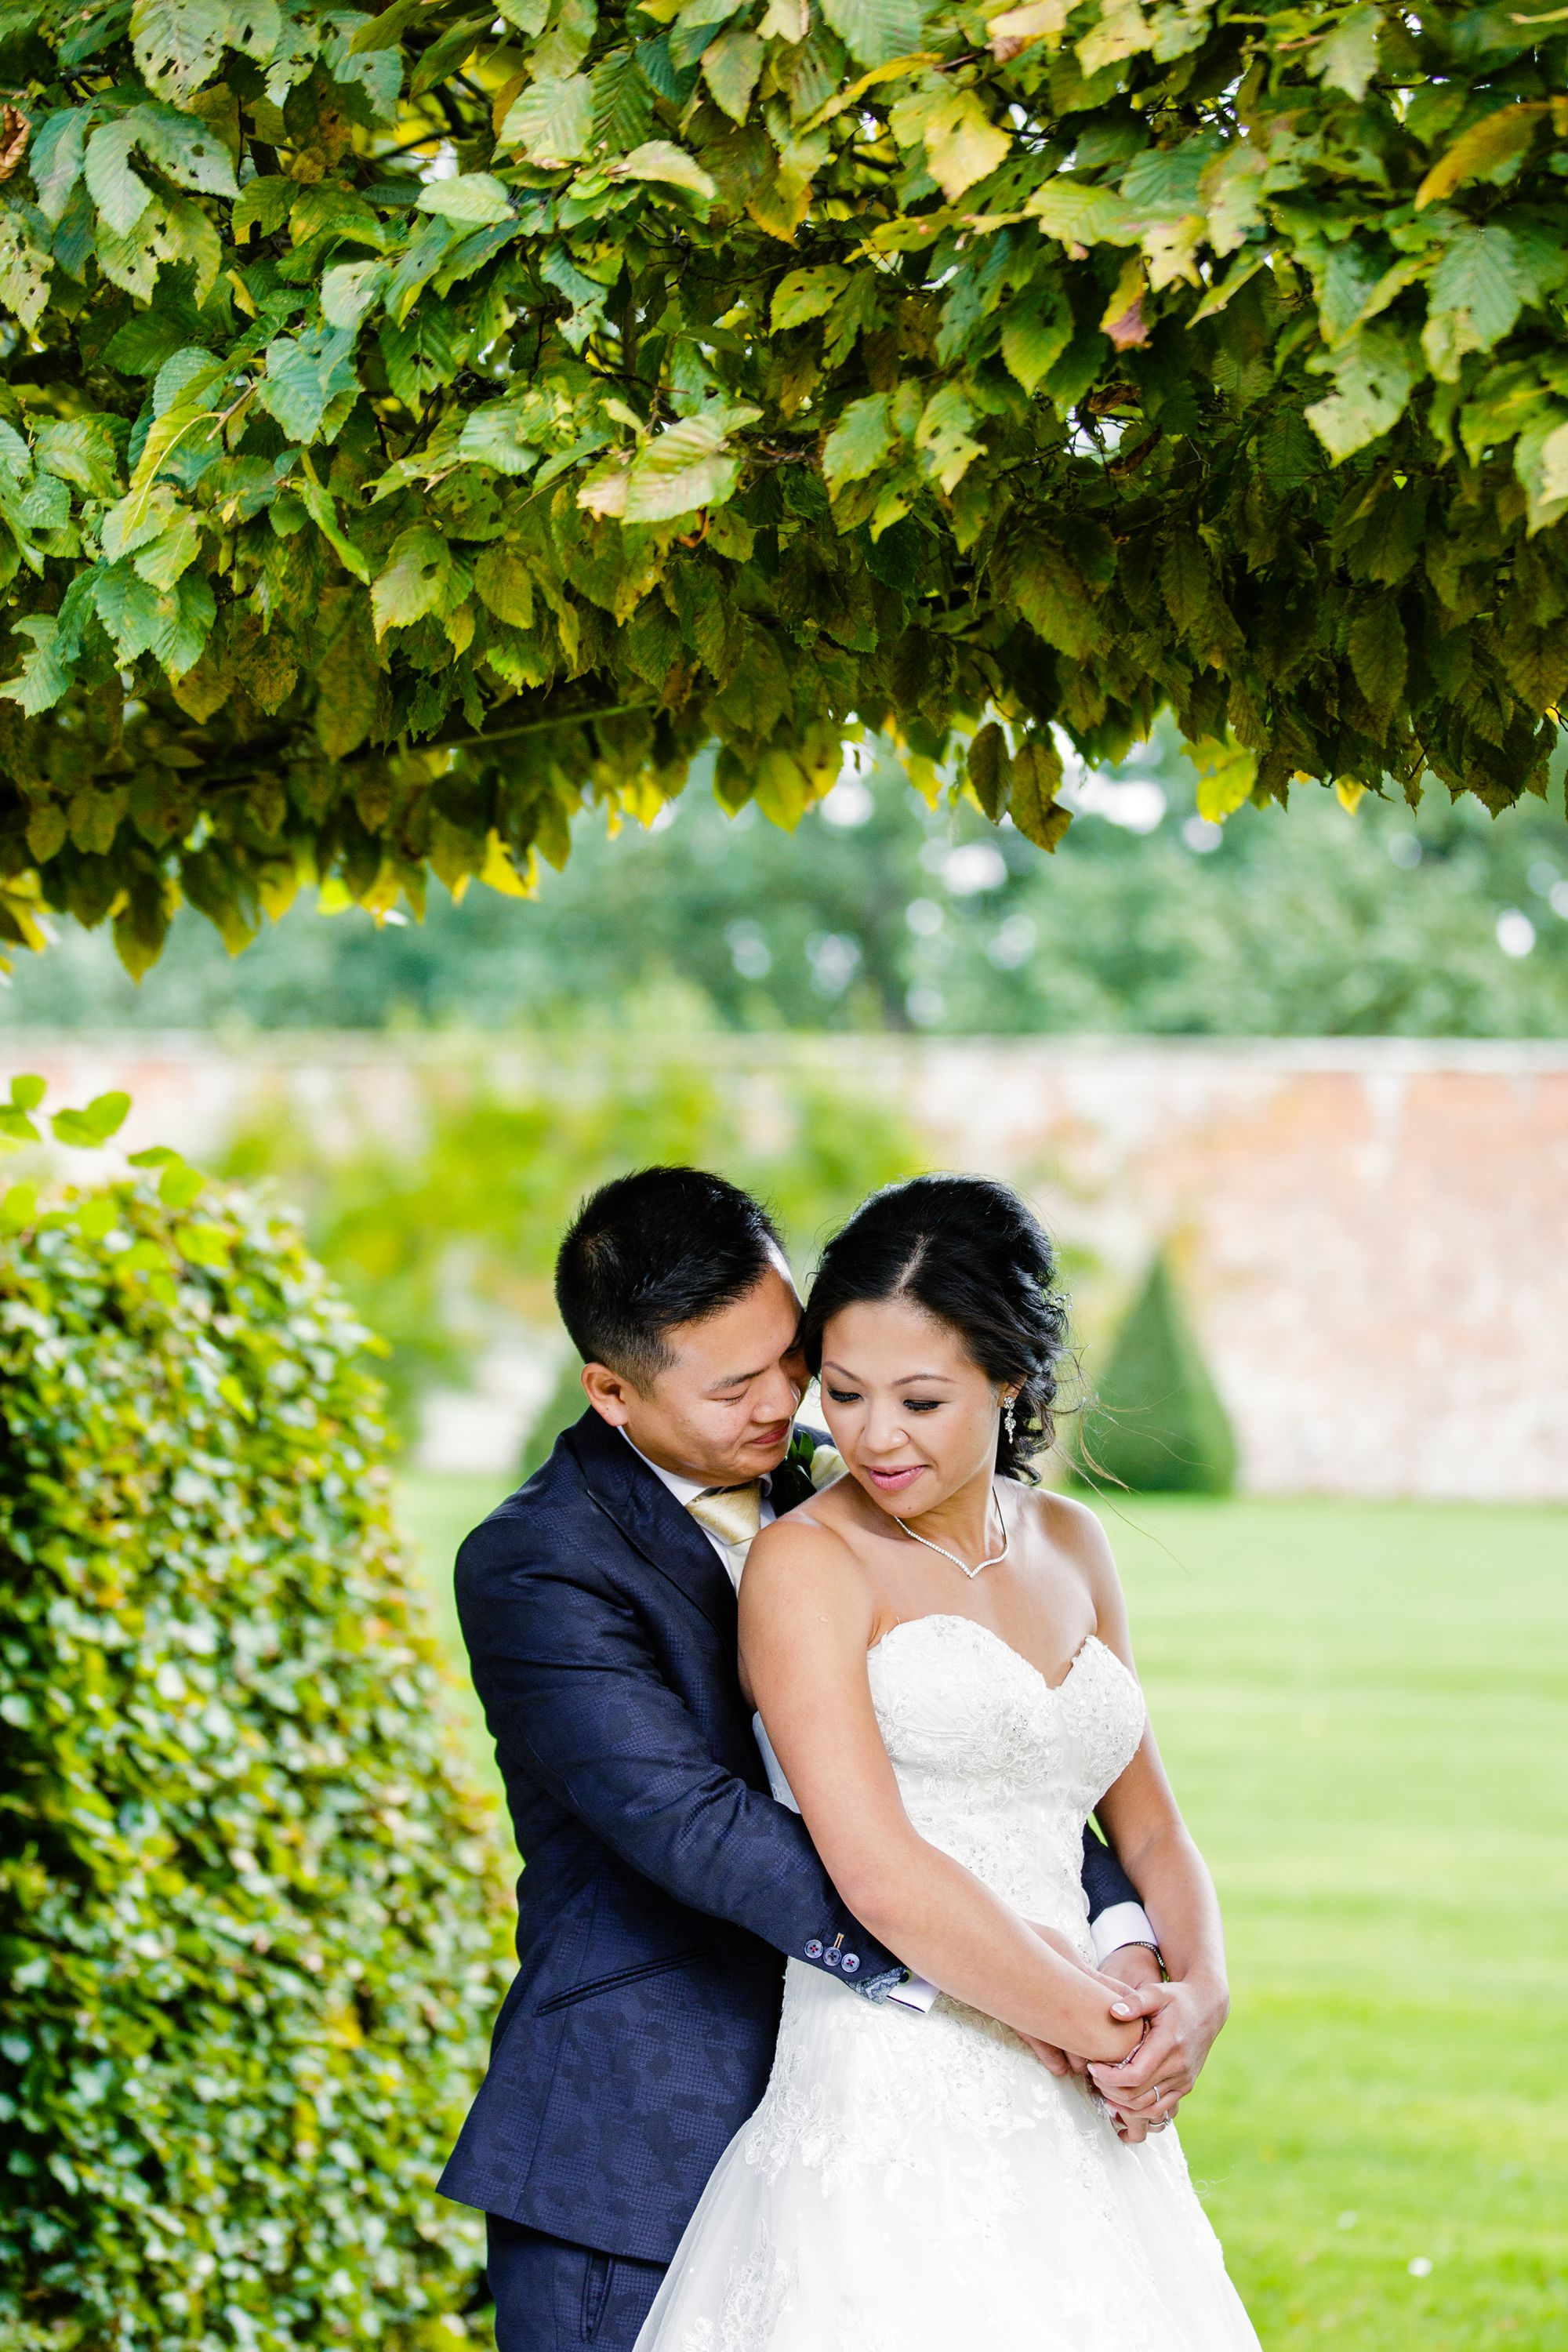 Combermere Abbey Cheshire Wedding Photographer-164.jpg